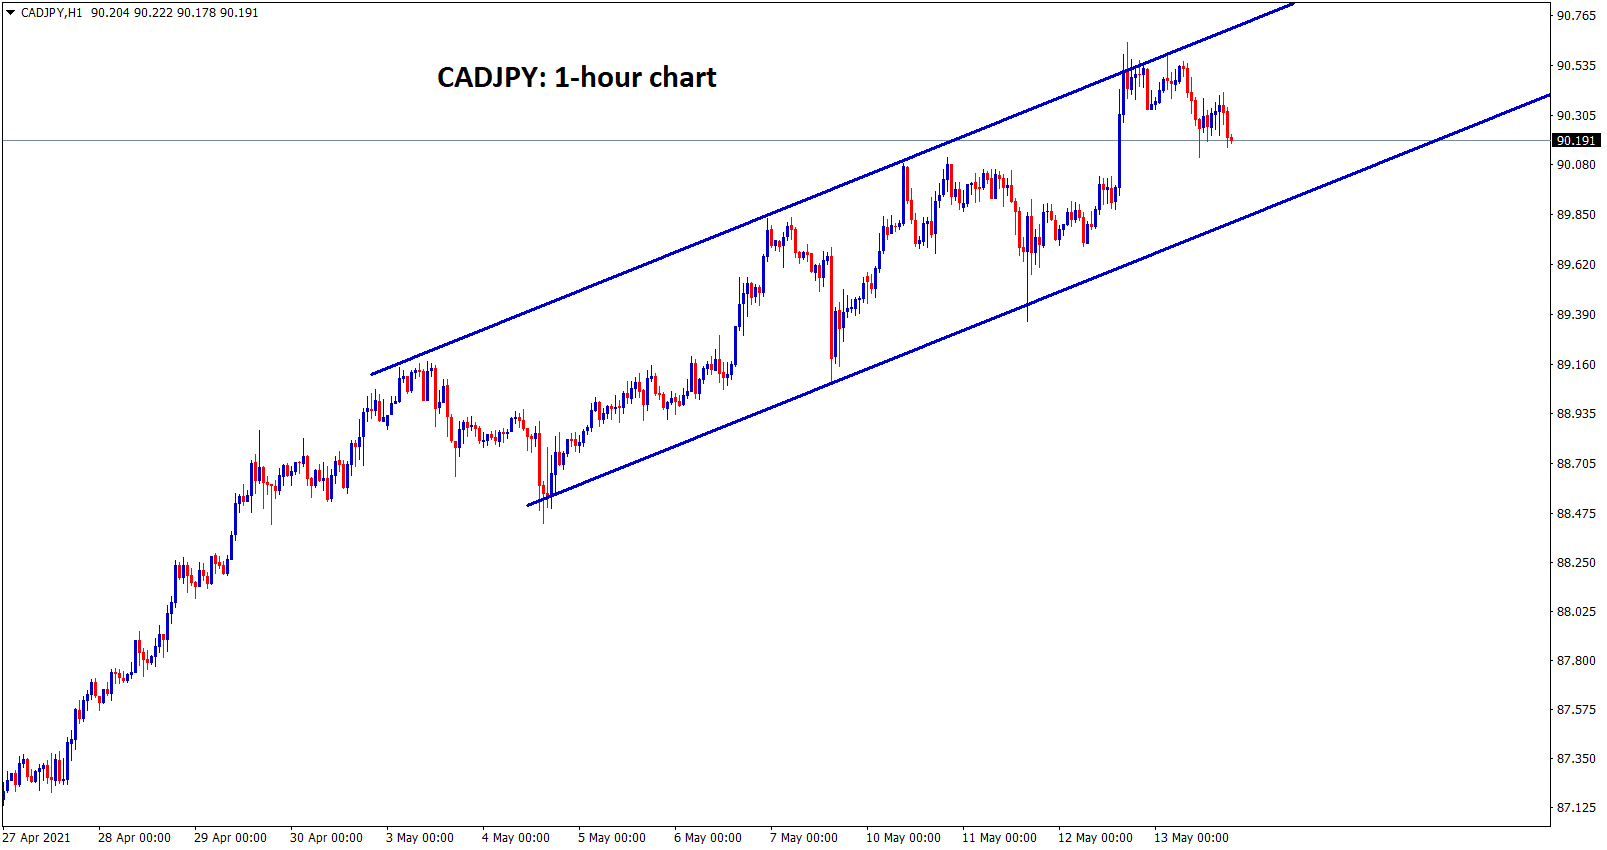 CADJPY is moving in an ascending channel in 1 hour chart. wait for breakout from this channel range.